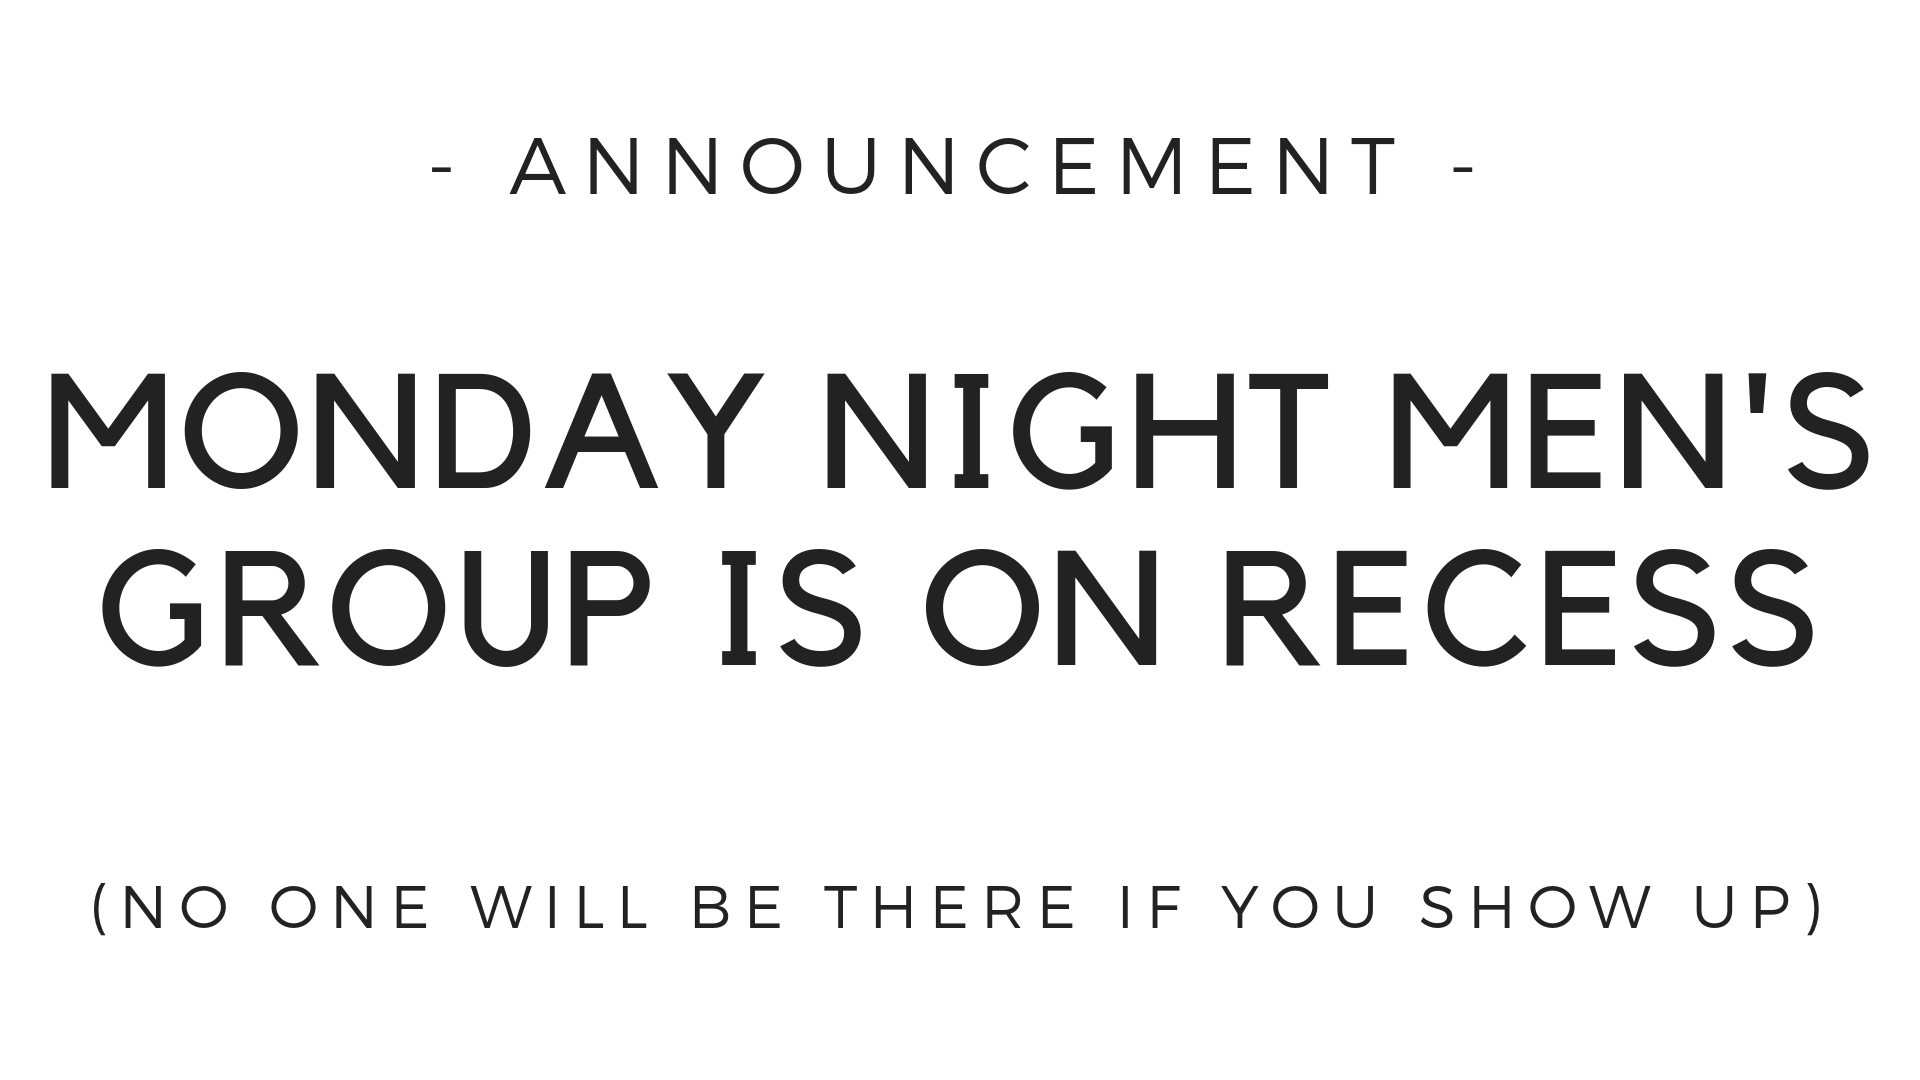 Our men's group had its last meeting of the year this past week. So don't show up this Monday night. The group will resume meeting for early next year.